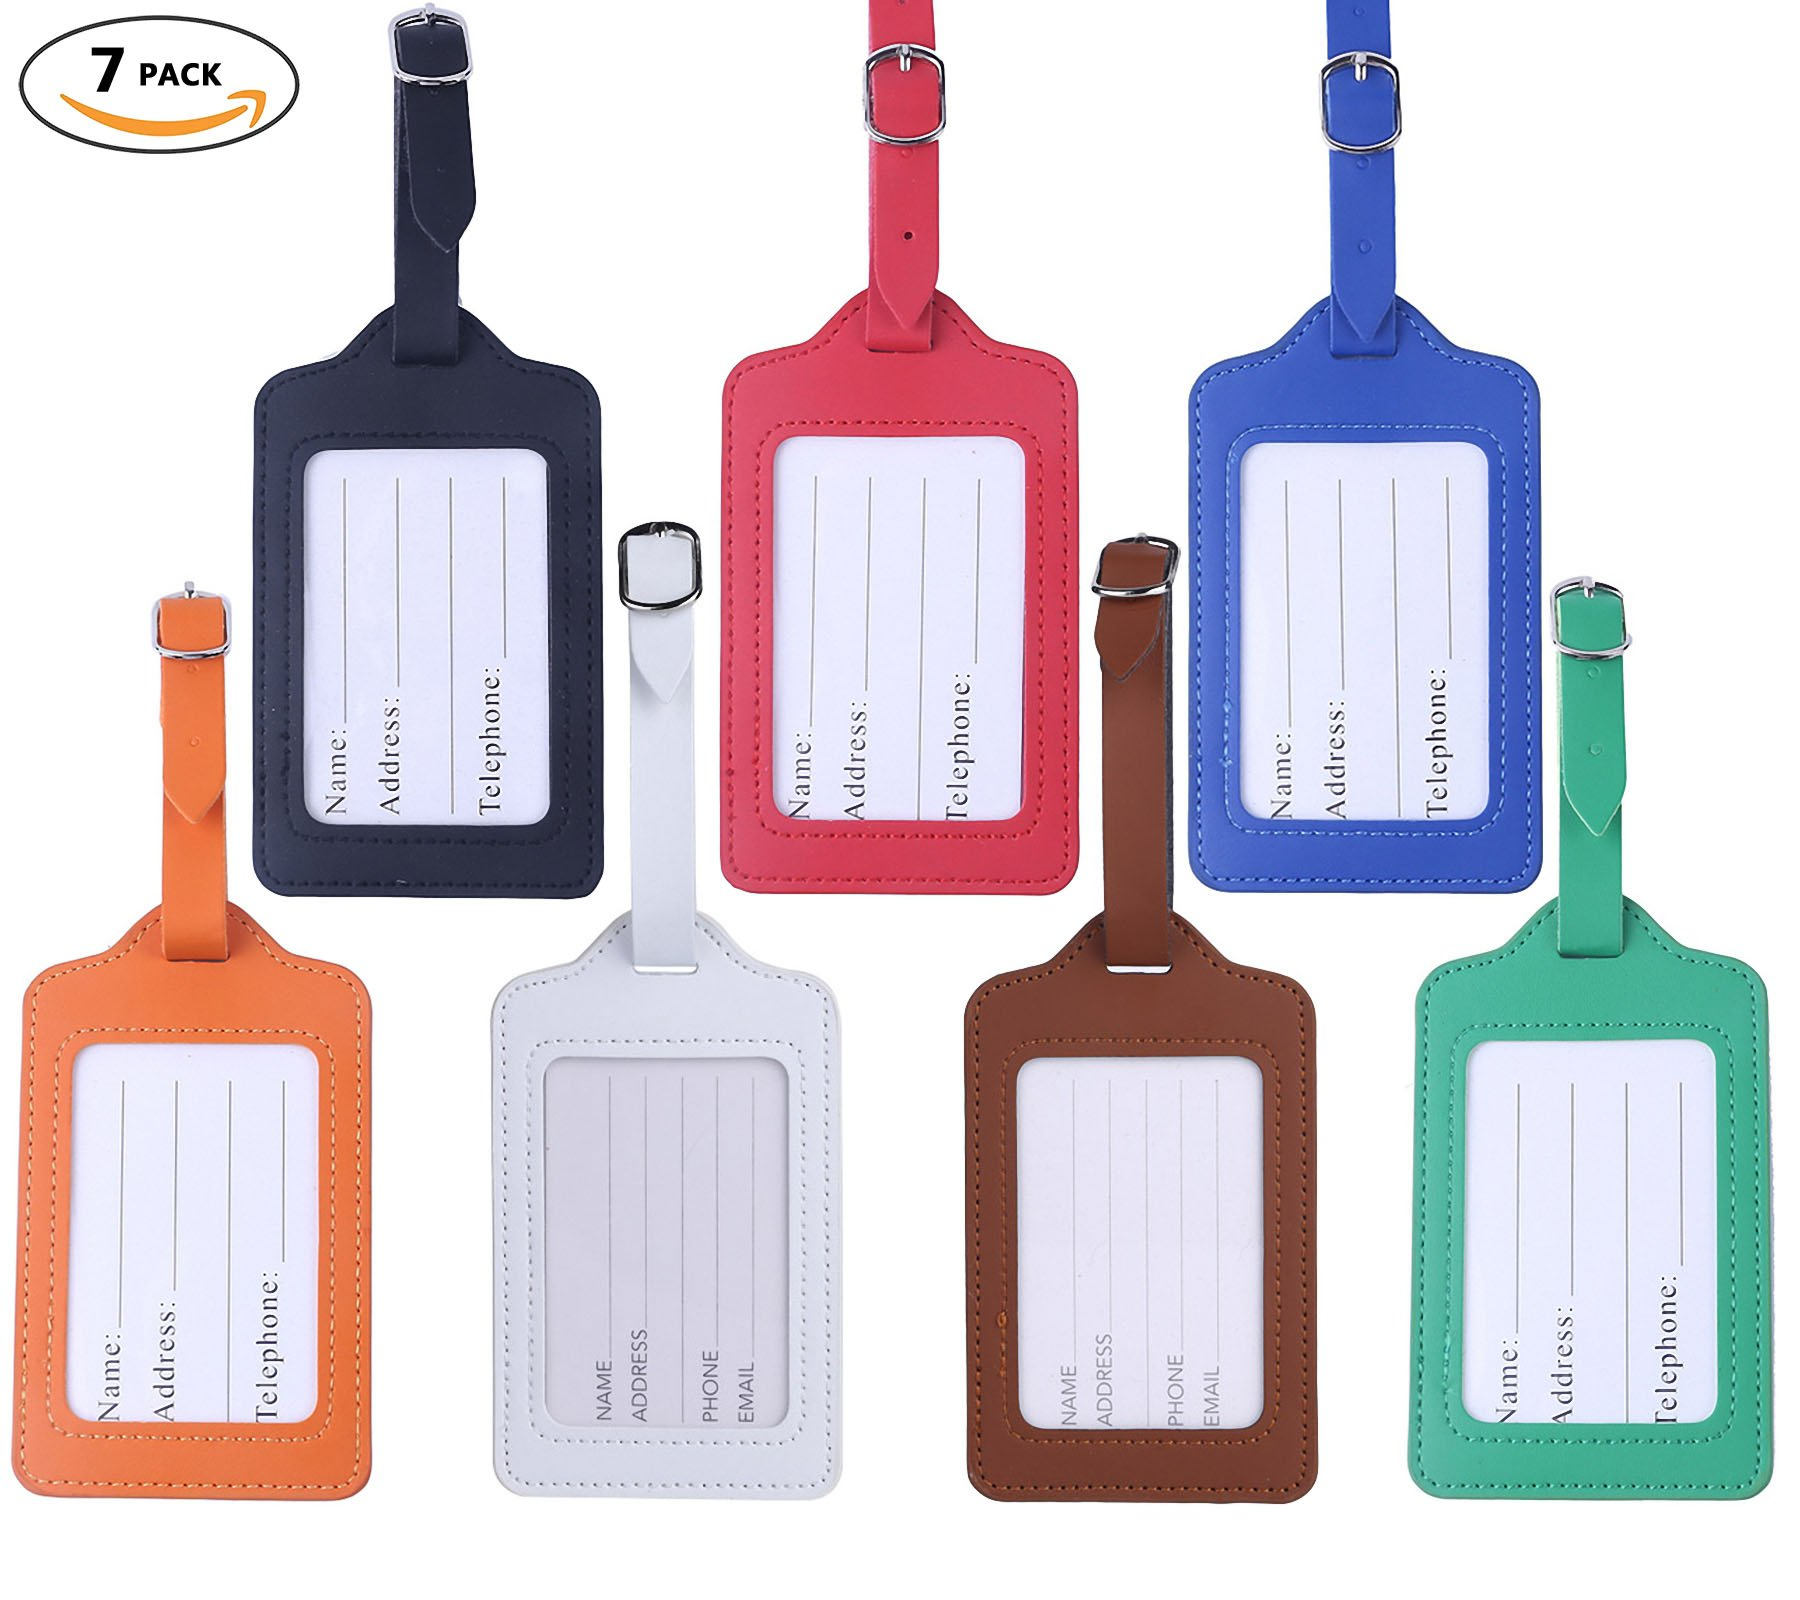 Travel Luggage Tags - Bulk PU Cruise Baggage Tag Set - Identifiers Labels For Suitcases 7 Pack